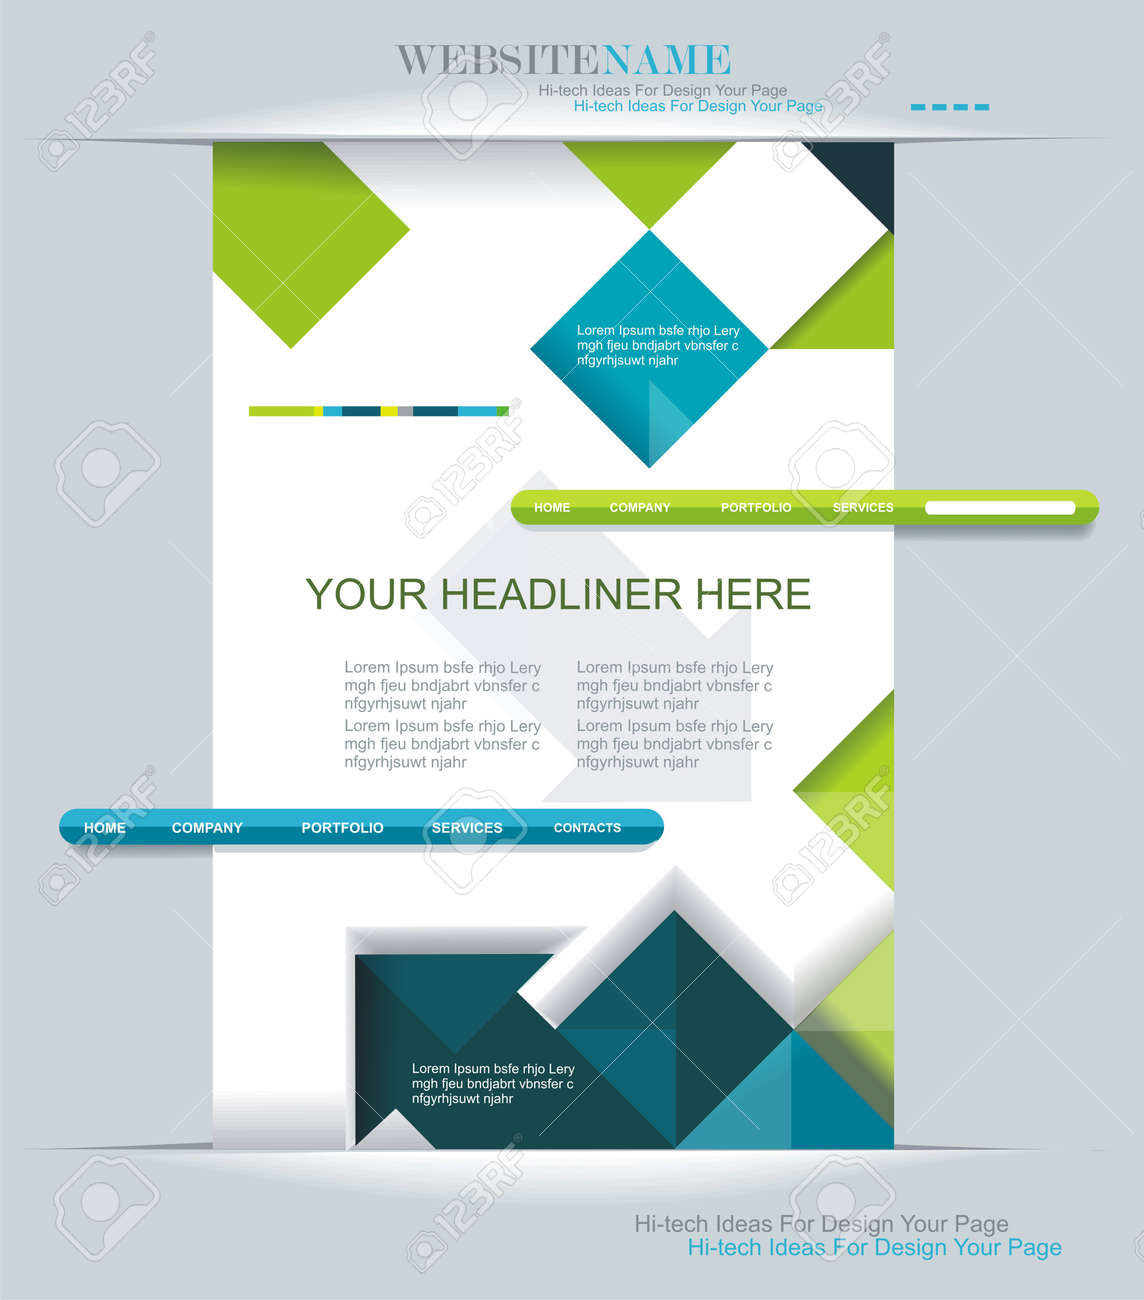 Modern Web Design Can Be Used For Book Cover Graphics Lay